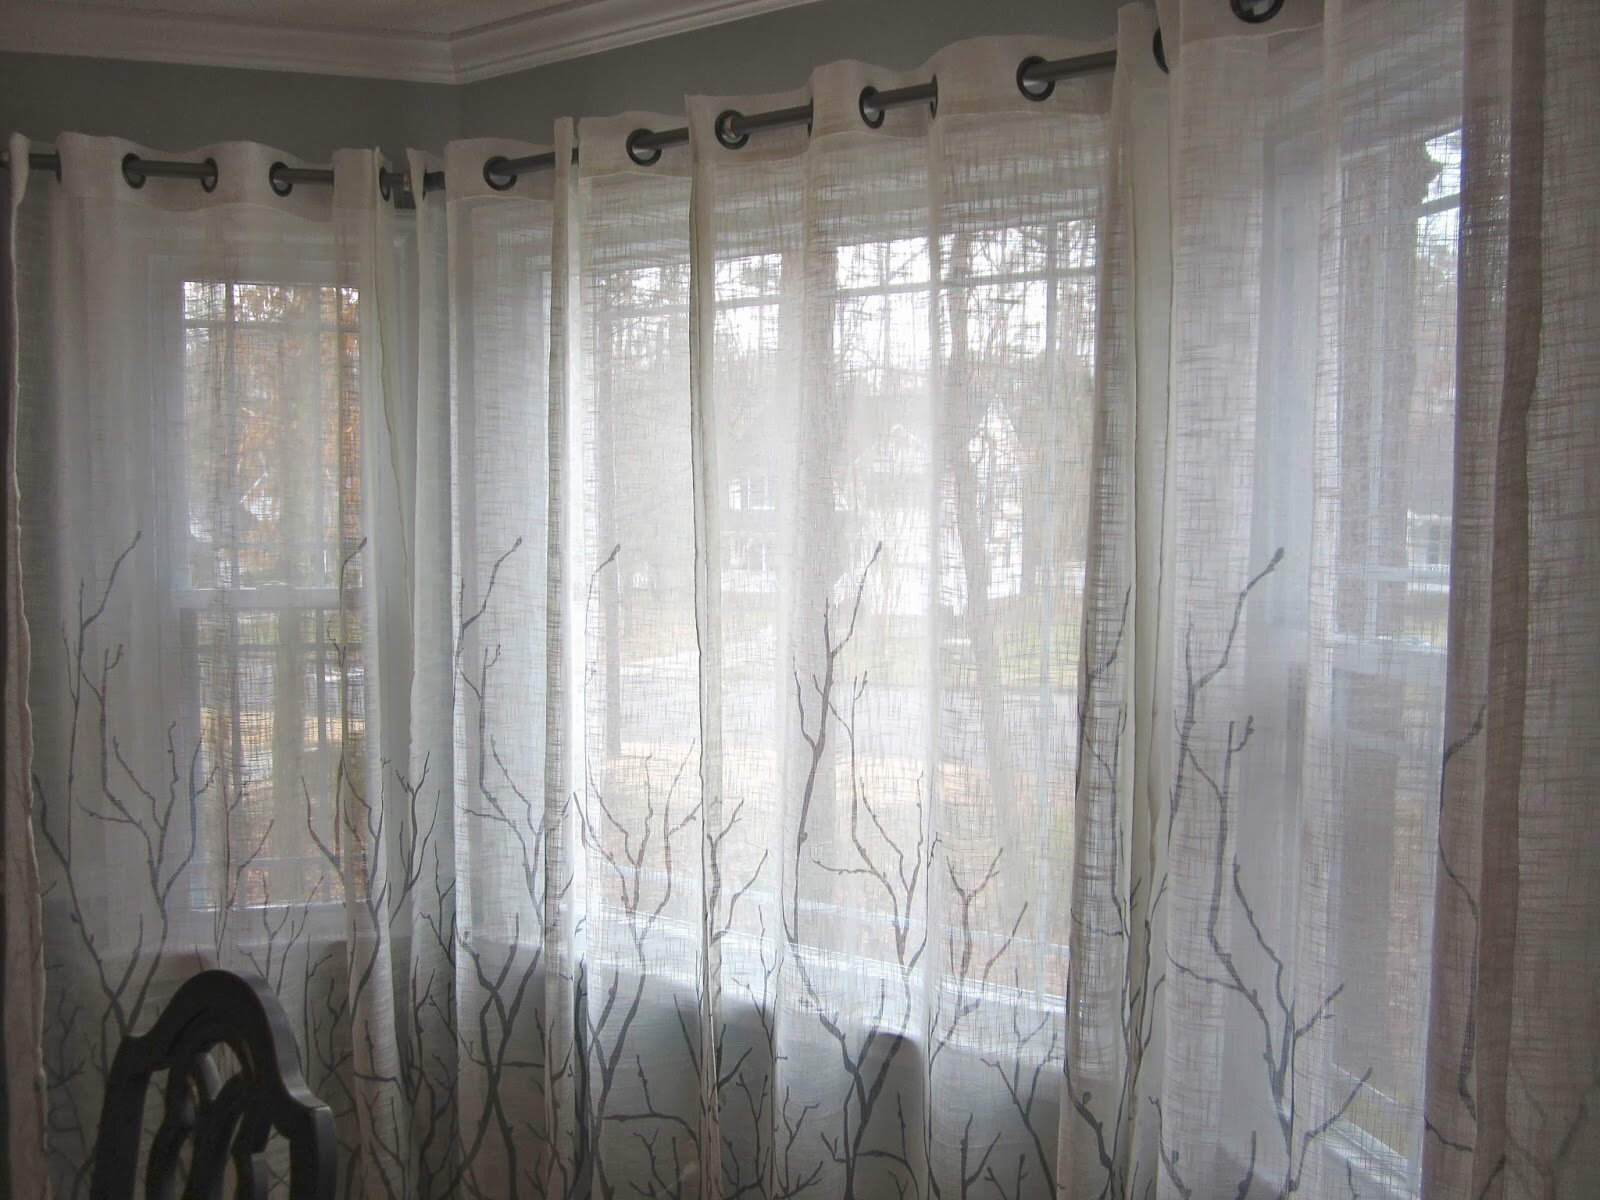 Bay Window Curtain Rods Bed Bath and Beyond | Bed Bath and Beyond Curtain Rods | Shower Rods